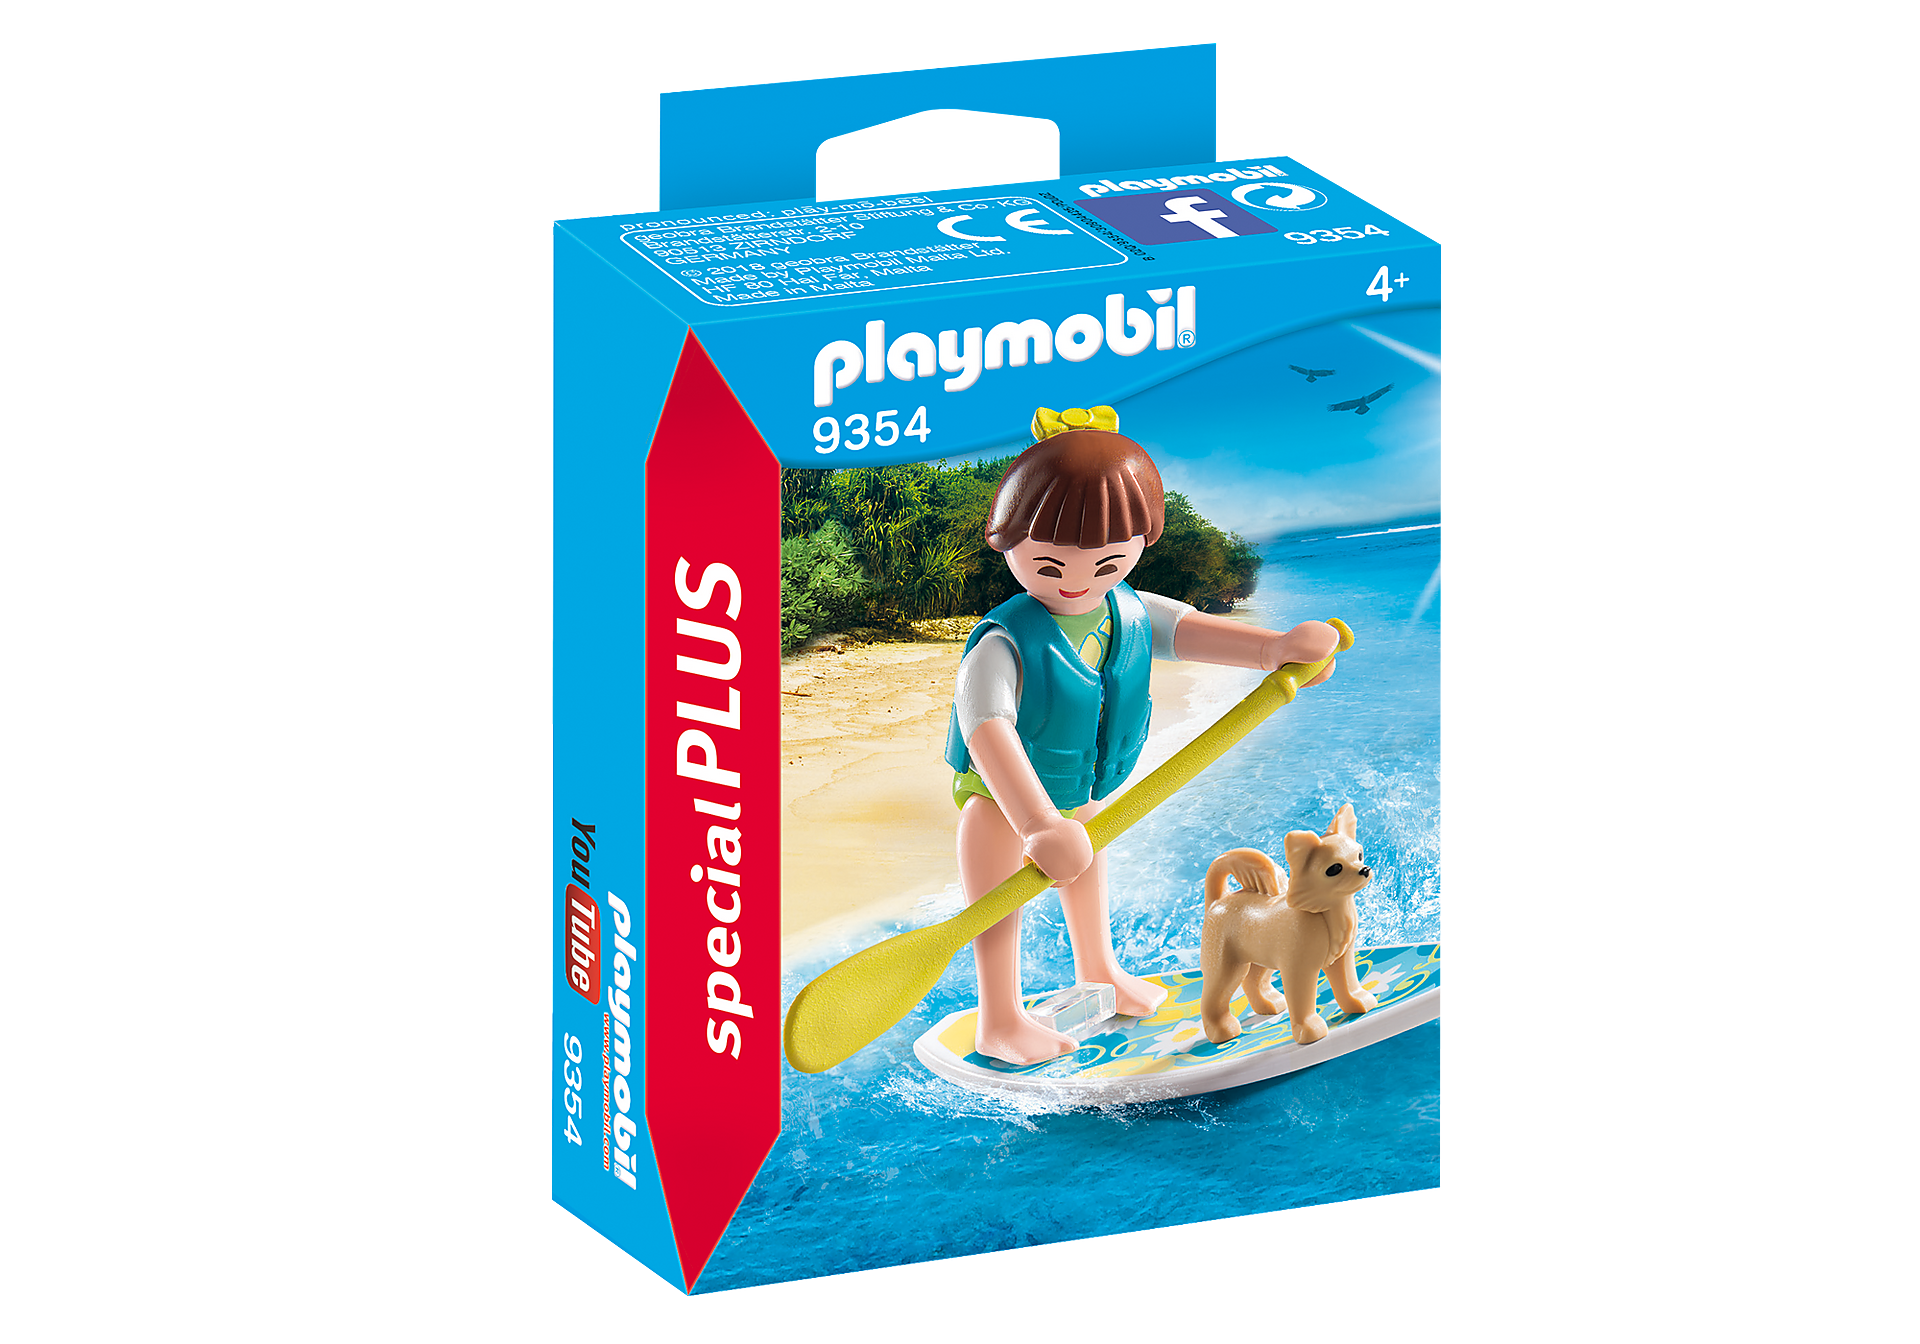 http://media.playmobil.com/i/playmobil/9354_product_box_front/Paddle Surf